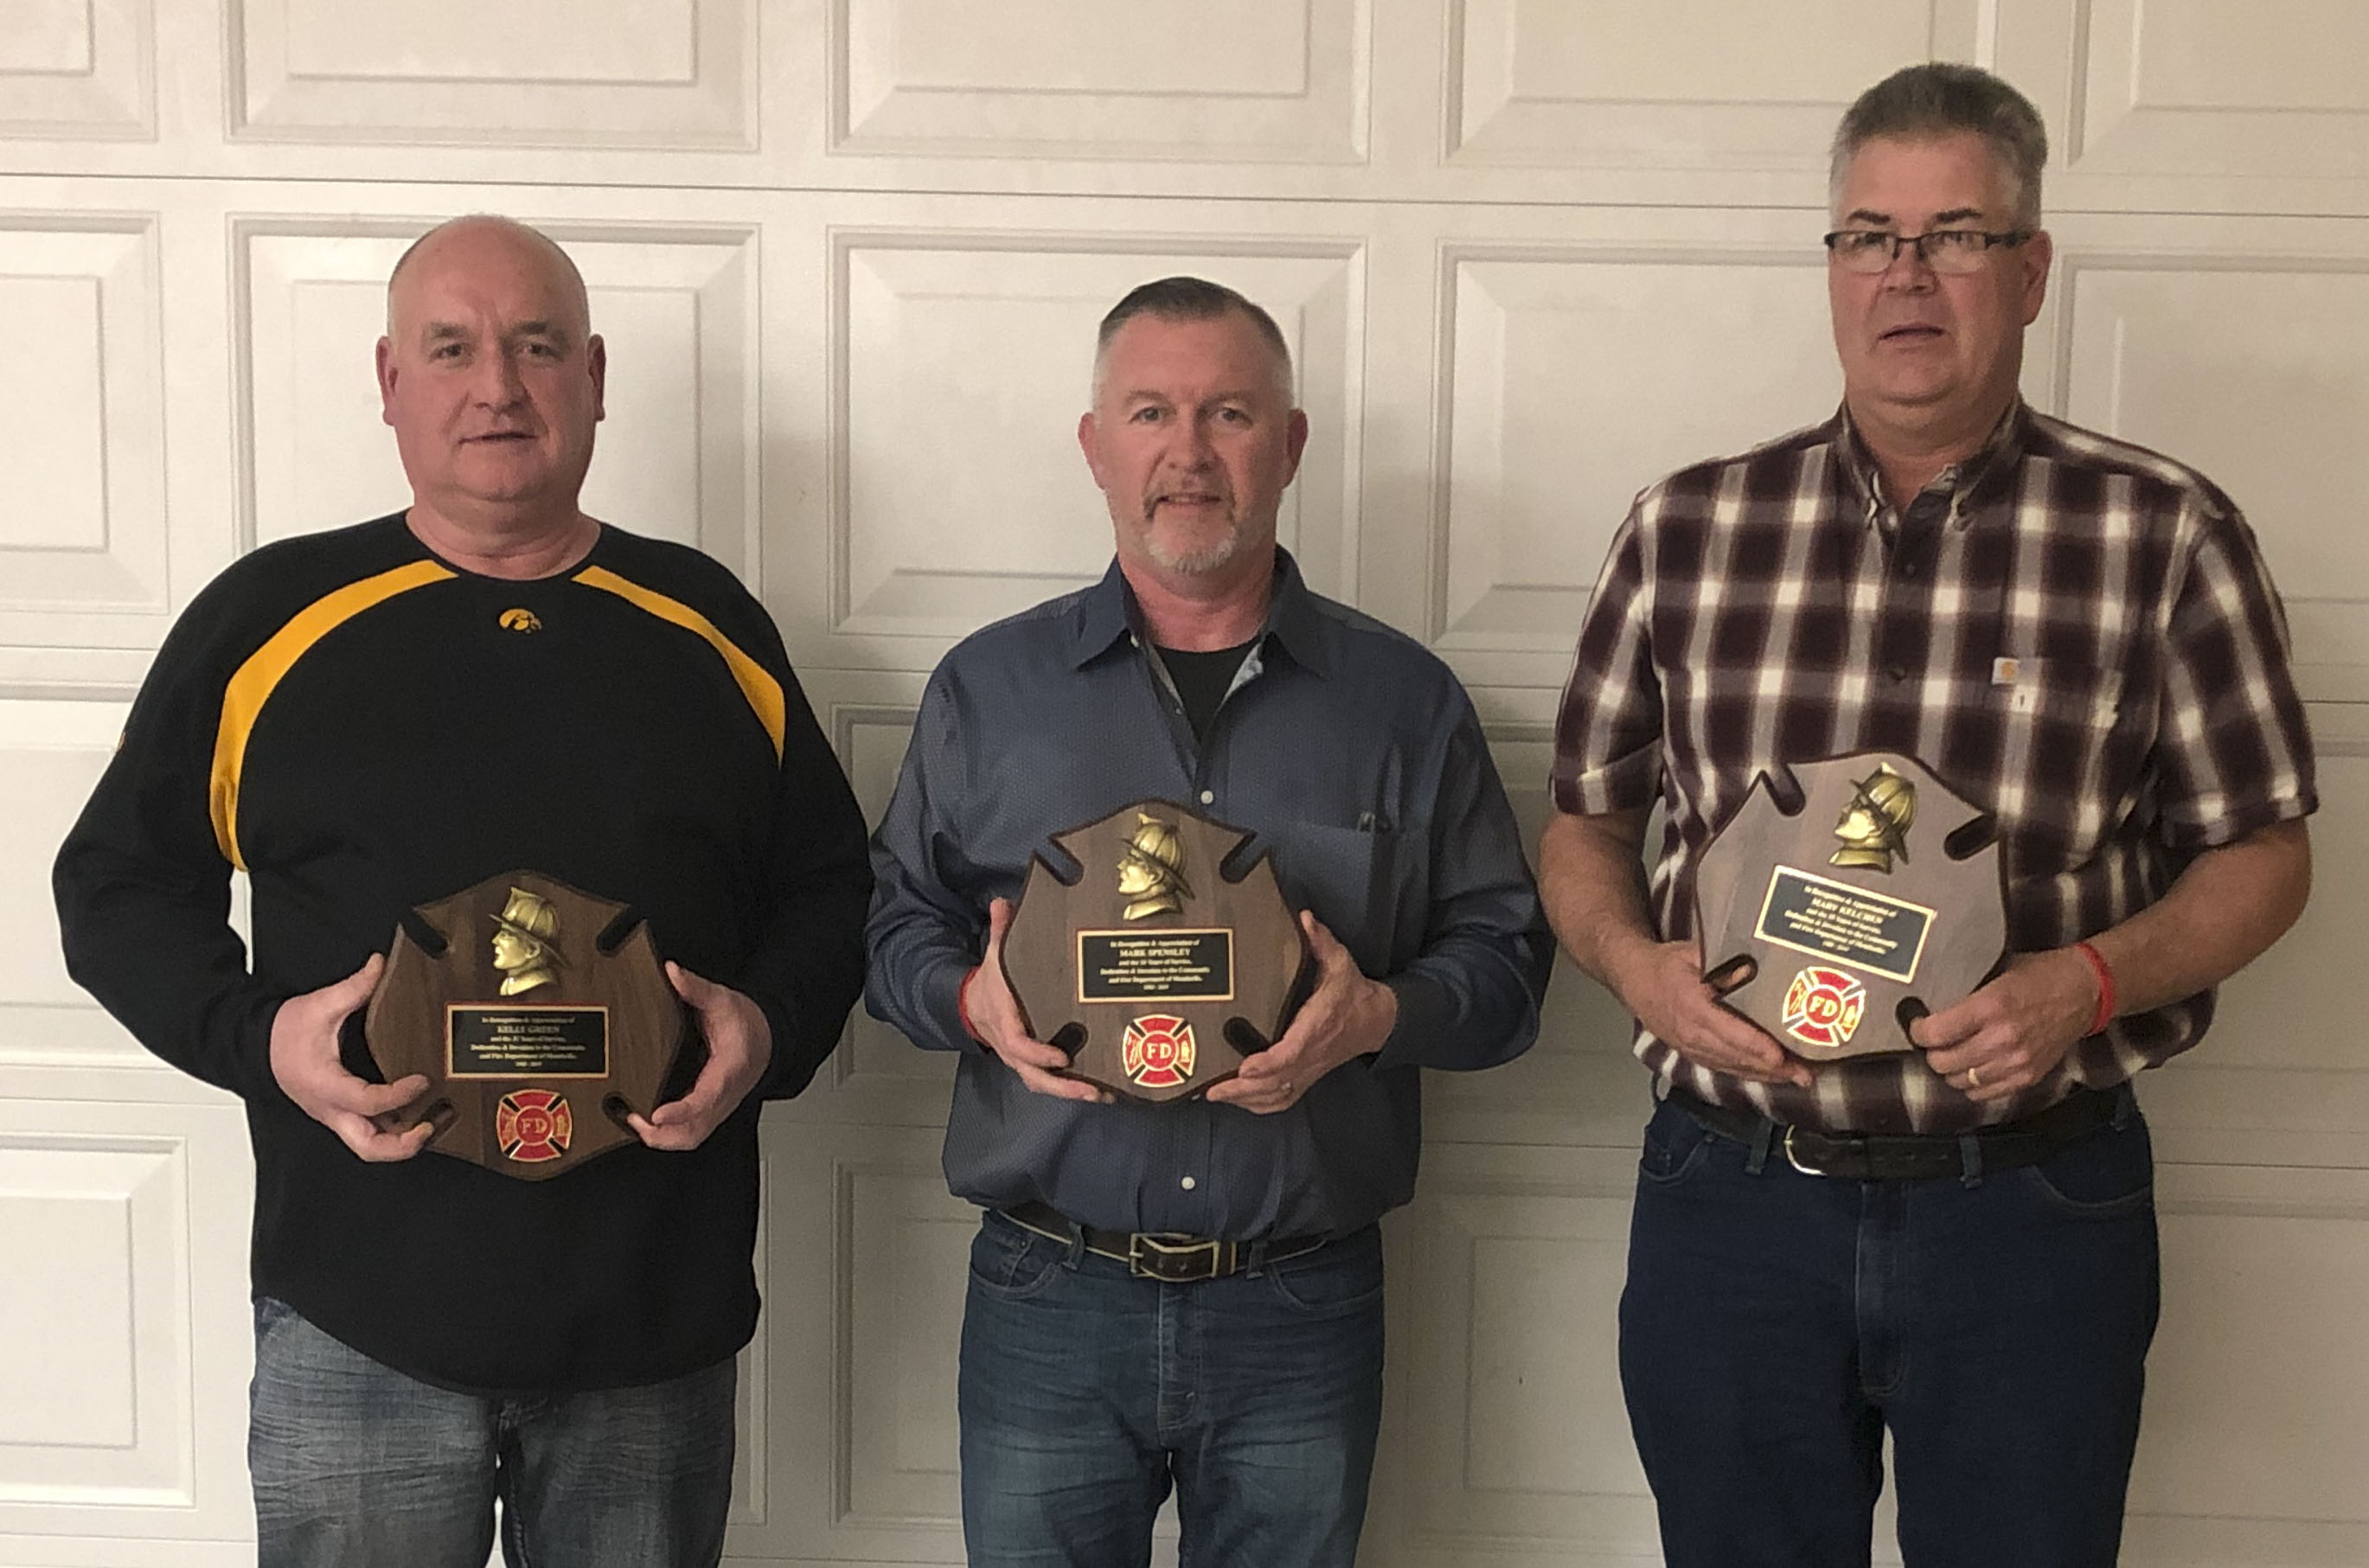 The Monticello Fire Department held their annual awards banquet on Feb. 8. Three retired firefighters were honored for their dedication to the department and community. From left are Kelly Green, 31 years, Mark Spensley, 26 years, and Marv Kelchen, 35 years. Missing from photo: Drew Mescher, 15 years.